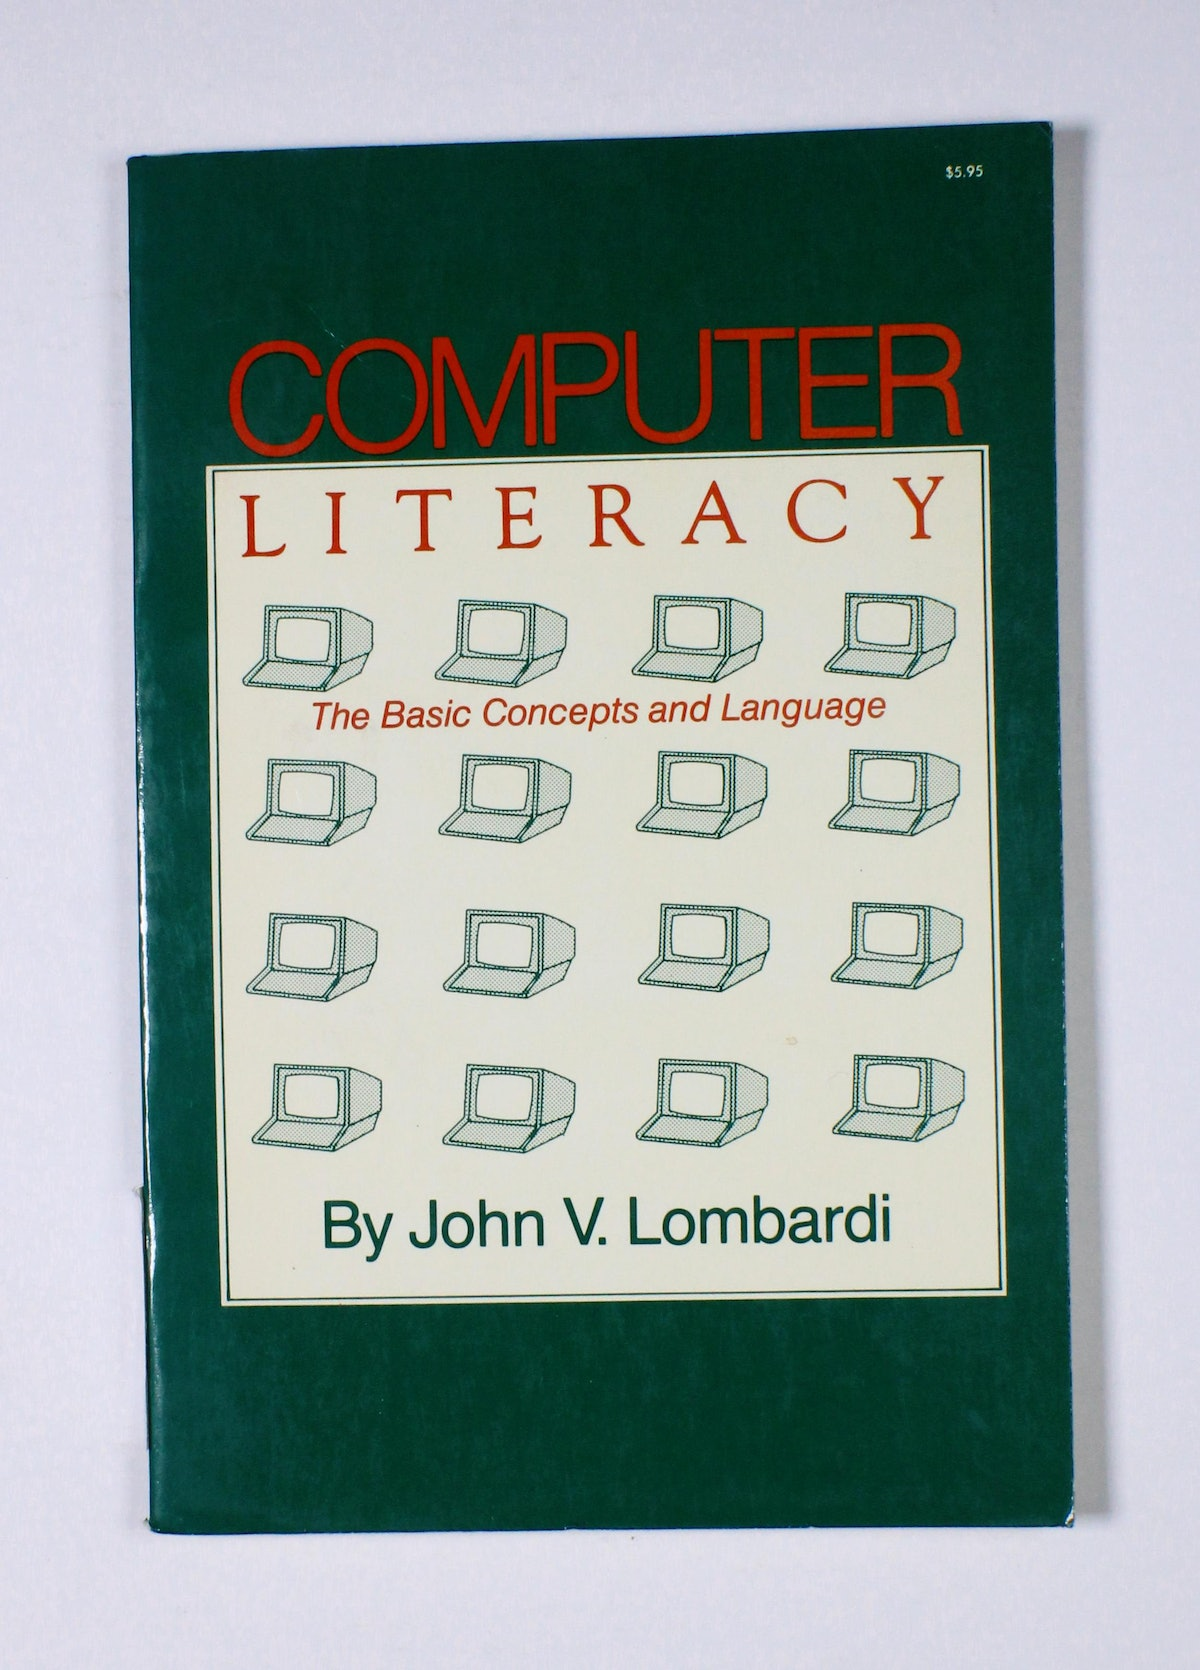 Computer Literacy: The Basic Concepts and Language